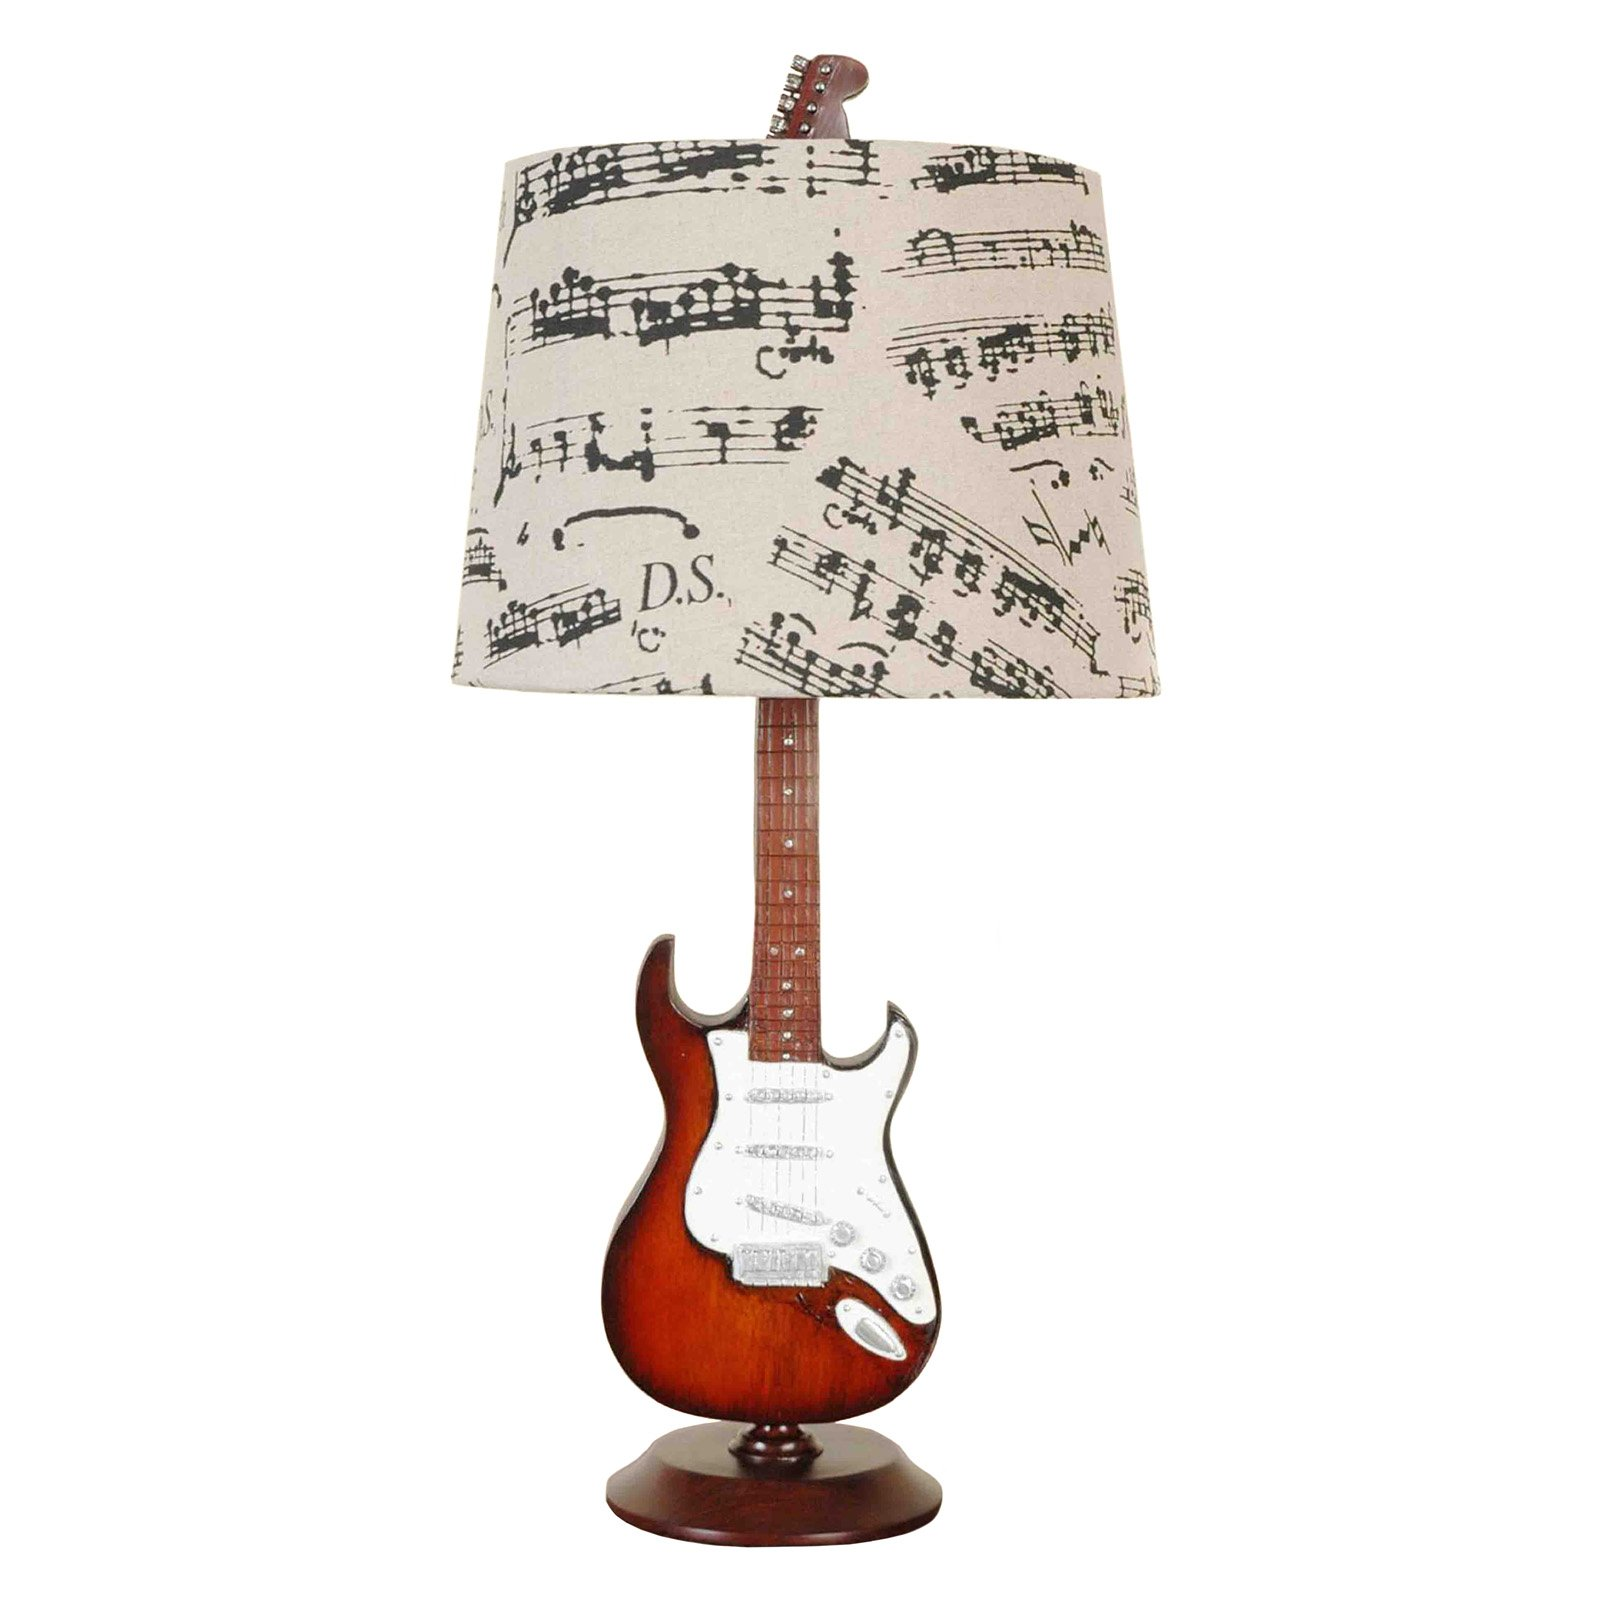 "24.5"" Guitar Desk Lamp Shade, Base has a guitar design, Shade has music notes, Gift for music lovers, Home, OFfice,... by Creative Motion Industries, Inc."